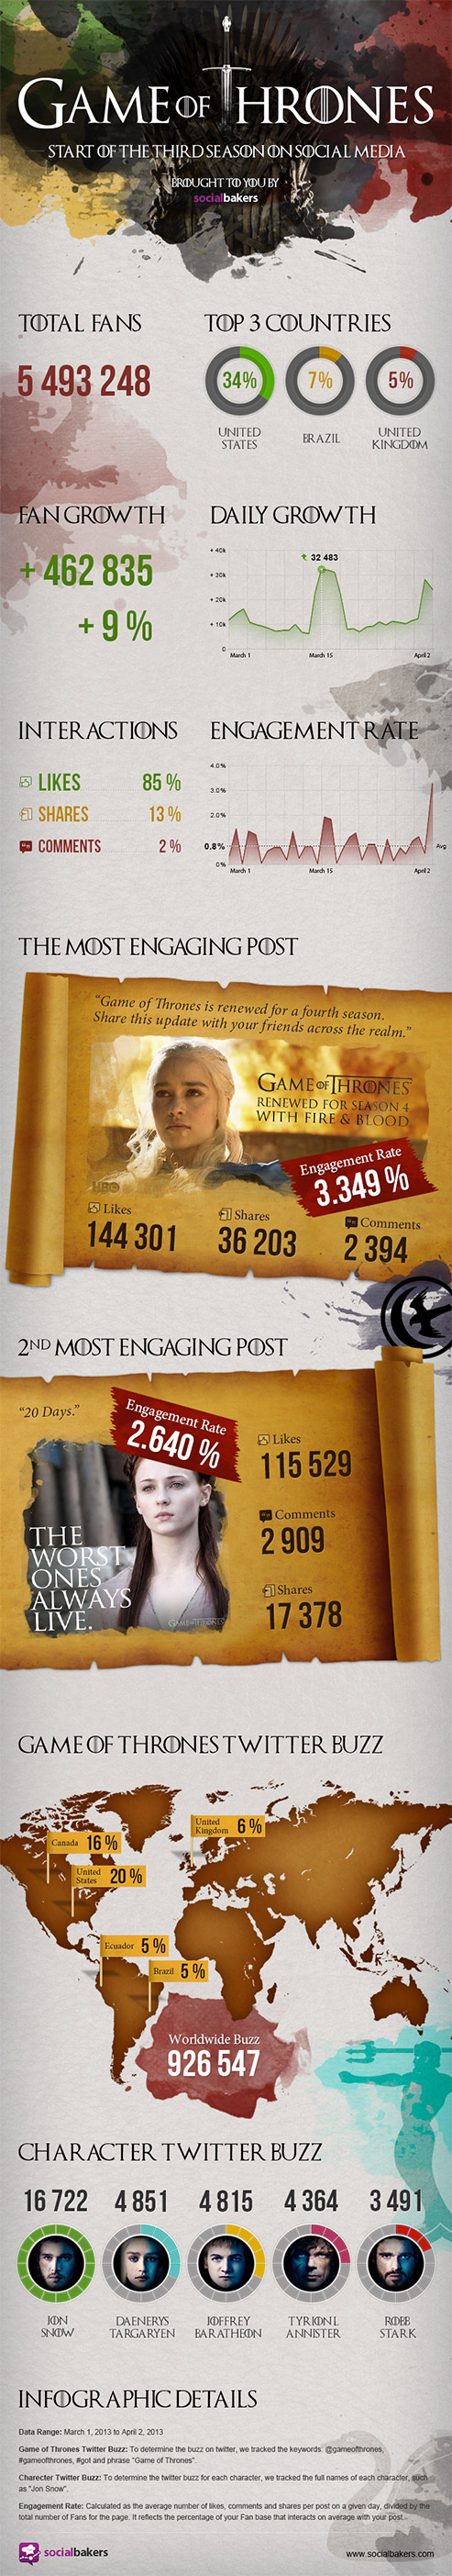 infographic_game_of_thrones